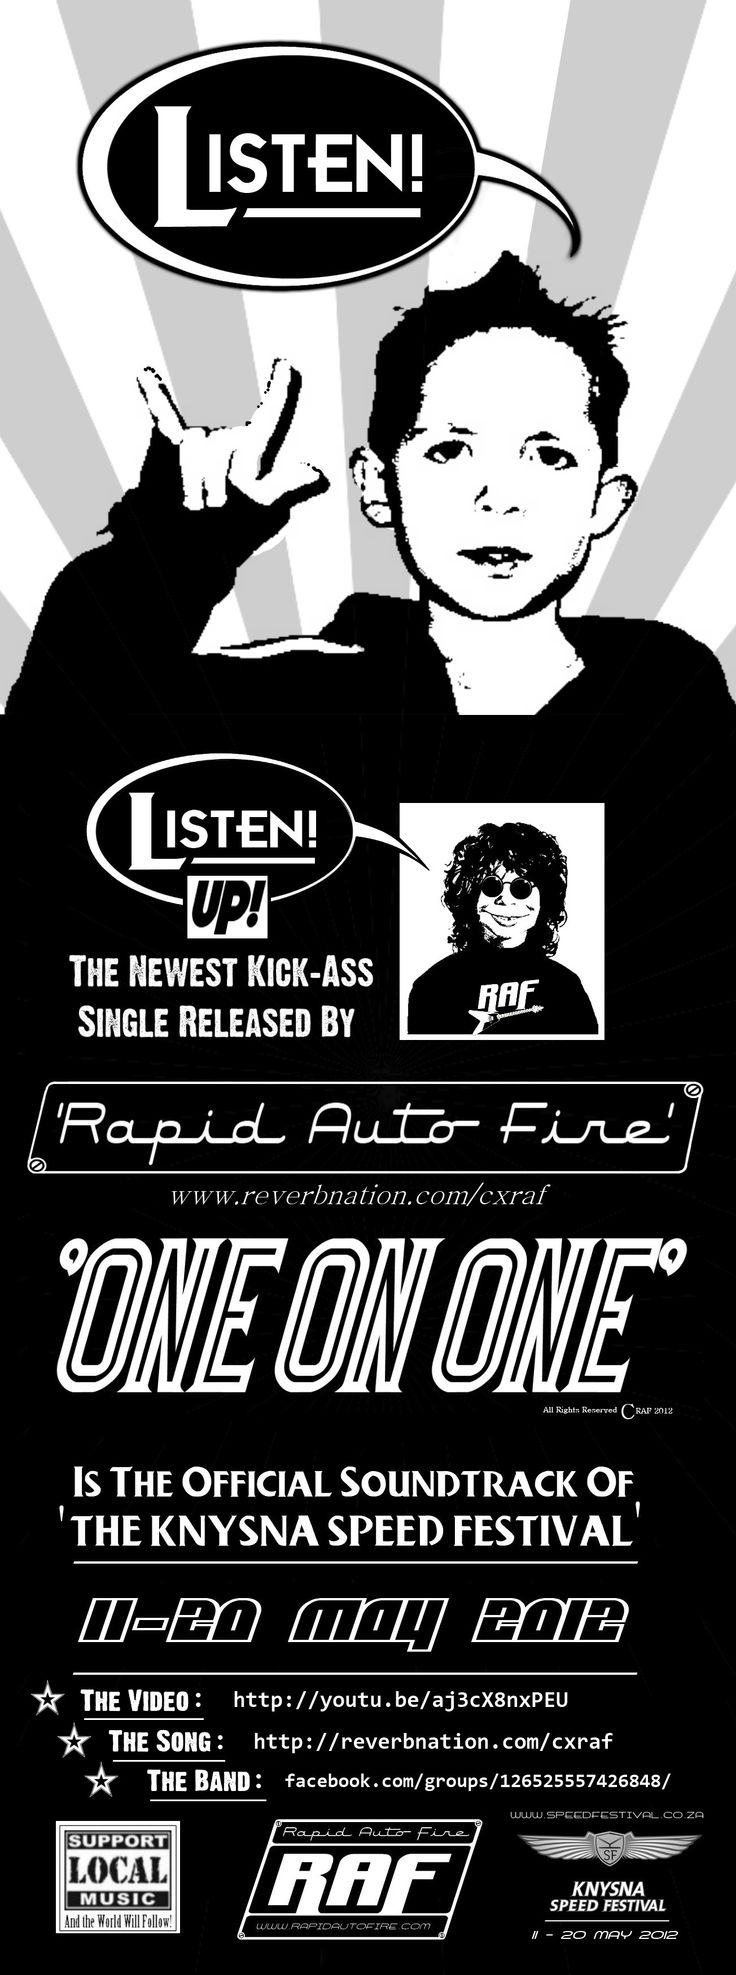 Concept & design: MOFO Graphic Rock. Flyer advertising a single released by the band R.A.F. (Client: R.A.F.)